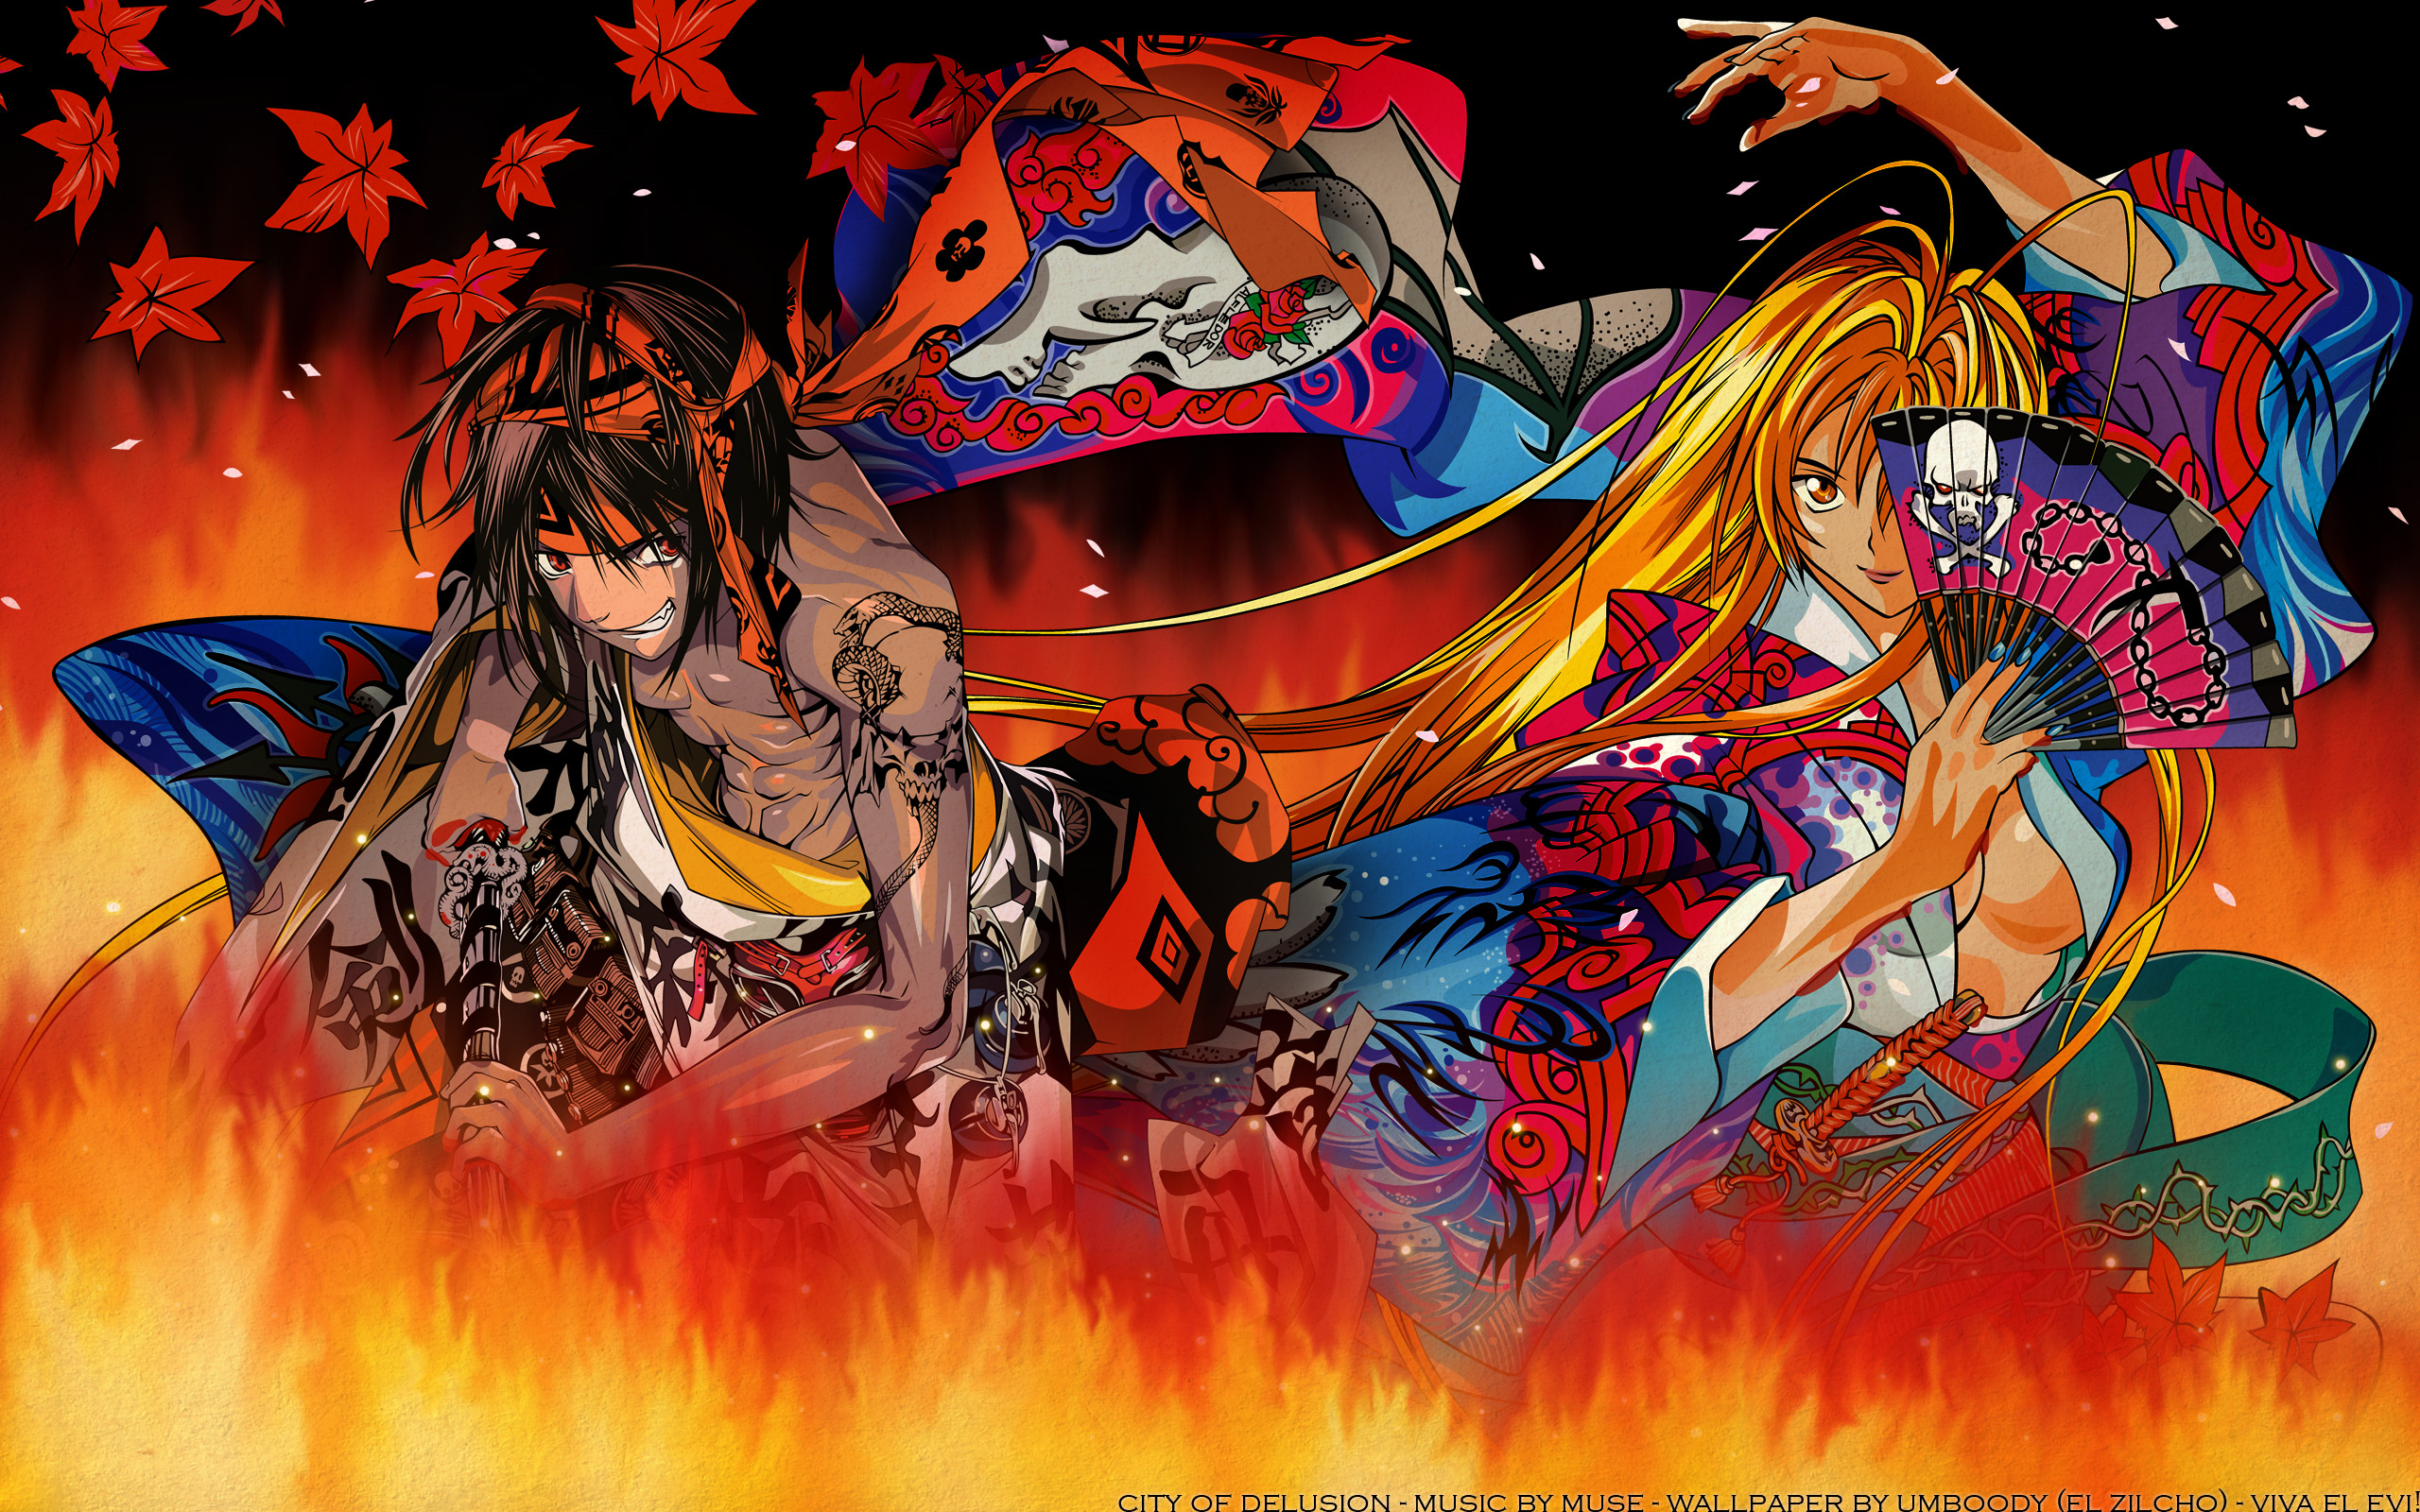 Tenjho Tenge Fighter Anime Wallpaper 02 | Imagez Only